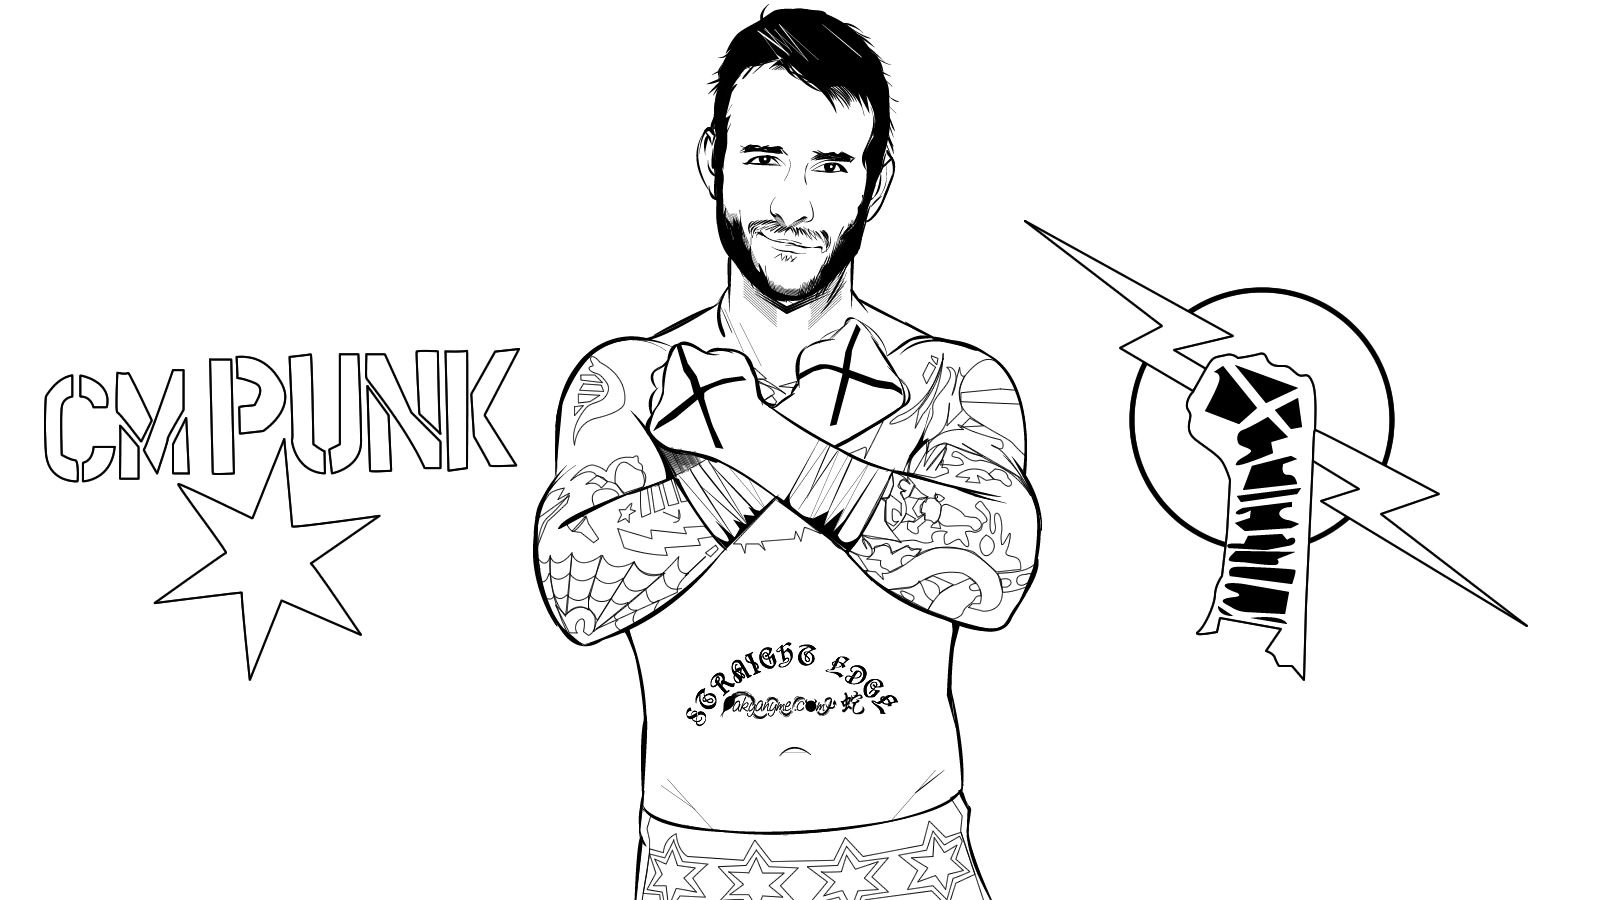 wwe cm punk colouring pages page id 61470 : Uncategorized - yoand ...